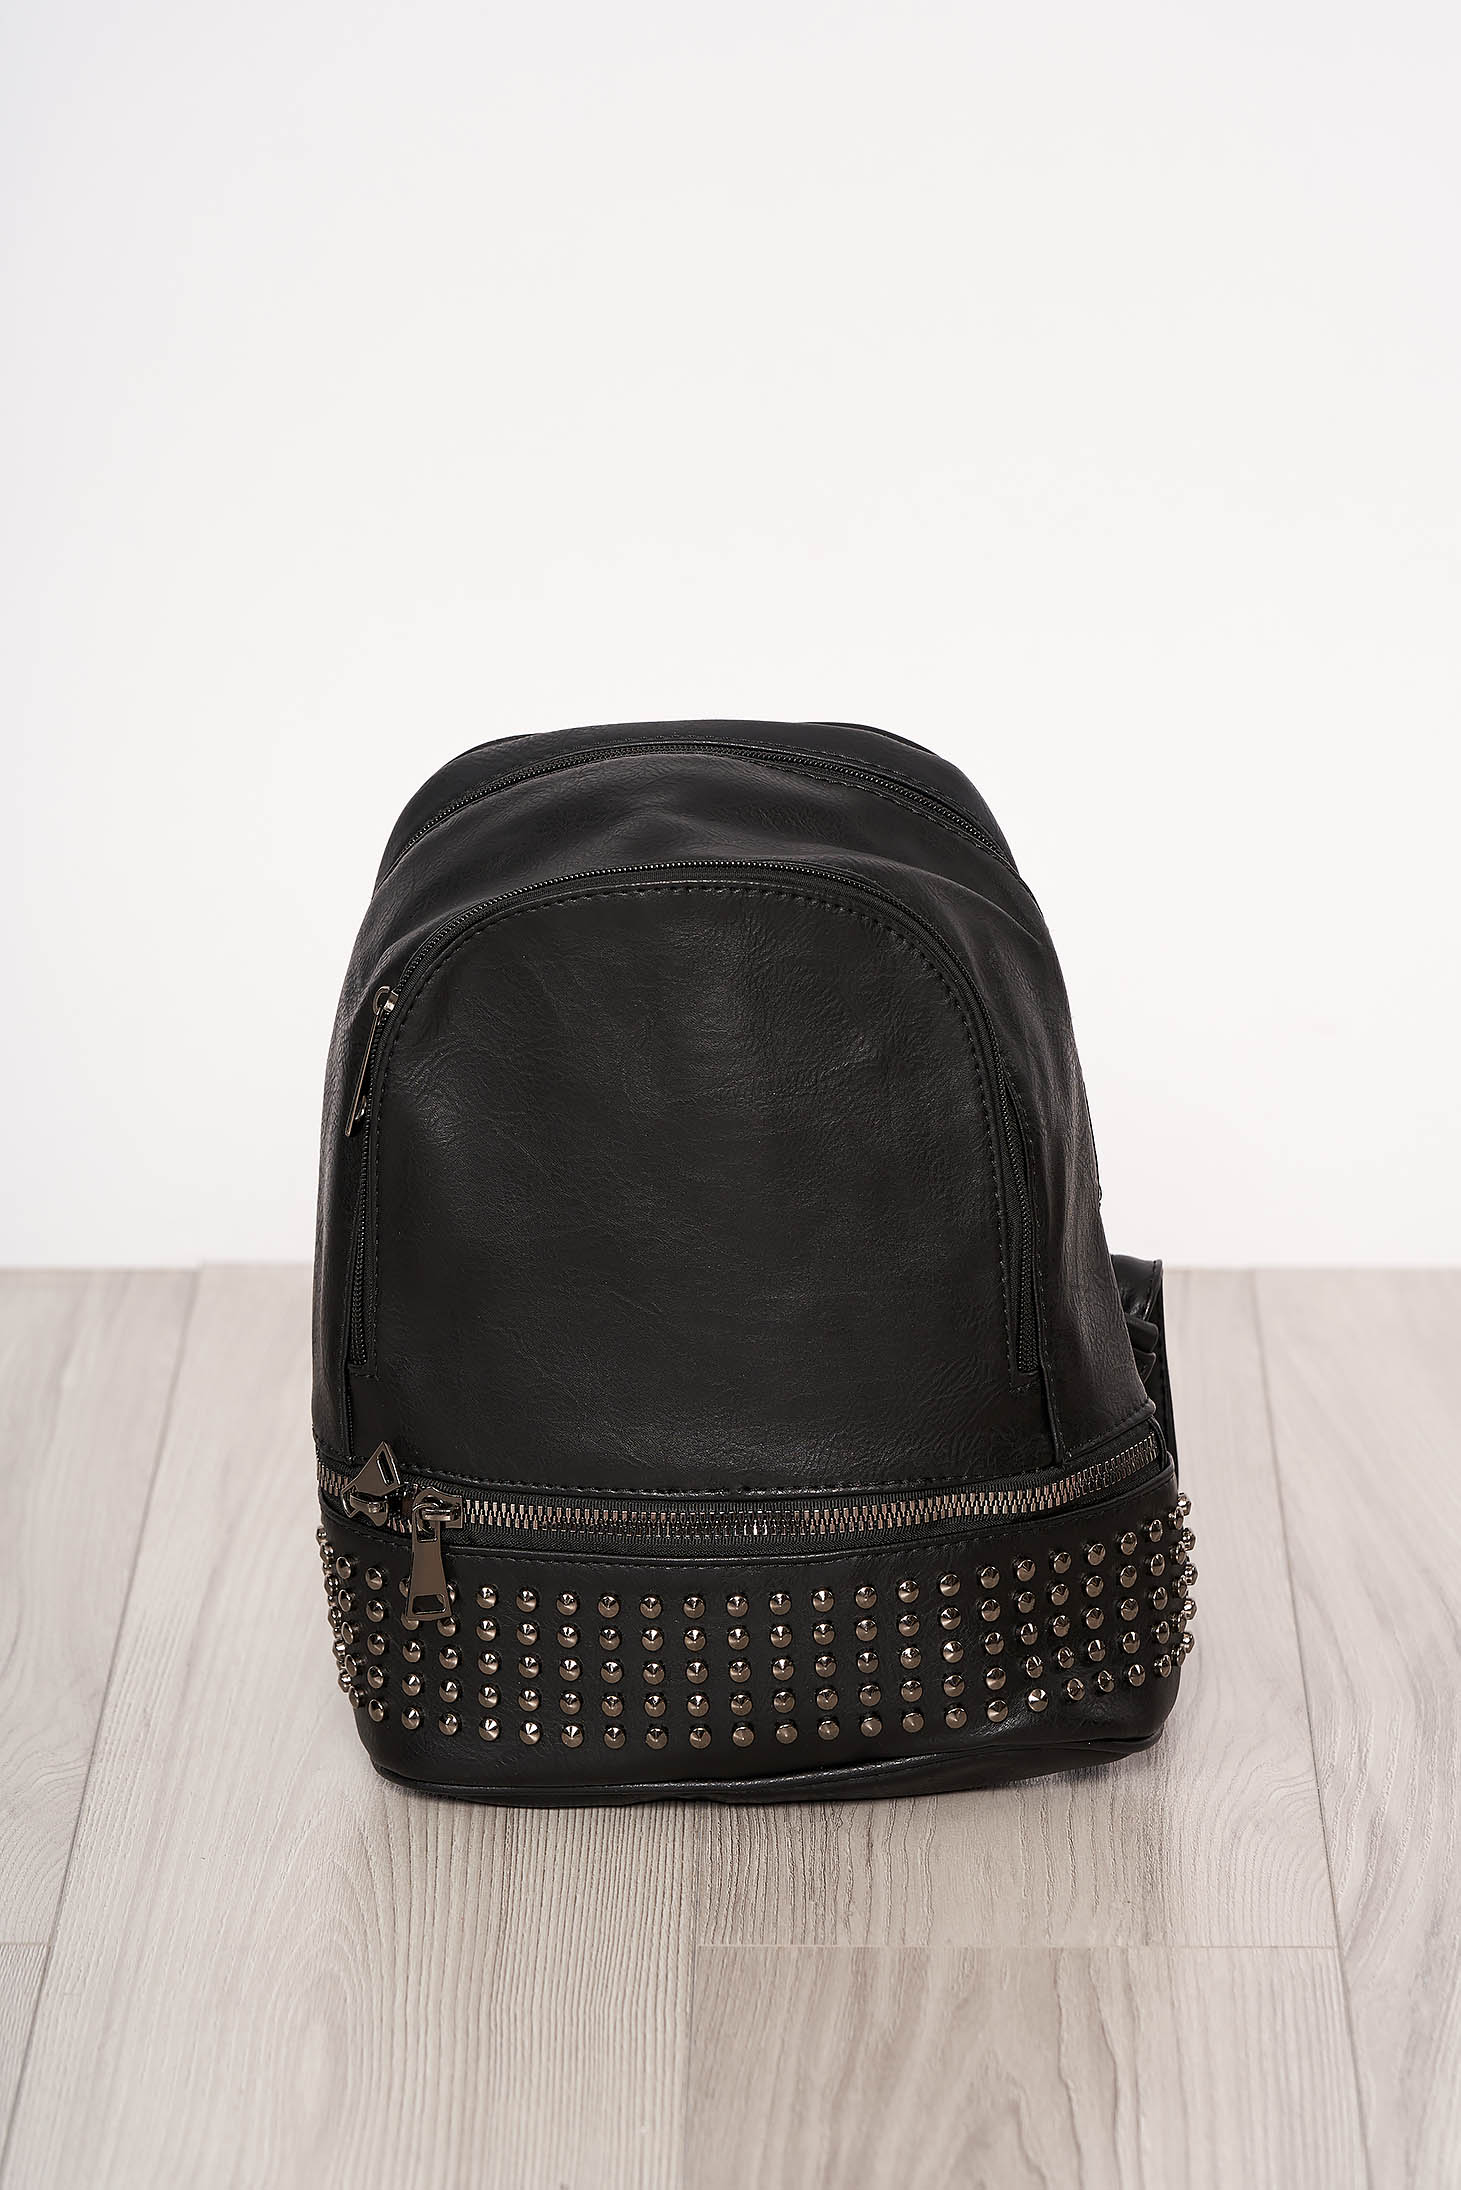 Backpacks black with metallic spikes zipper accessory ecological leather long, adjustable handle short handles